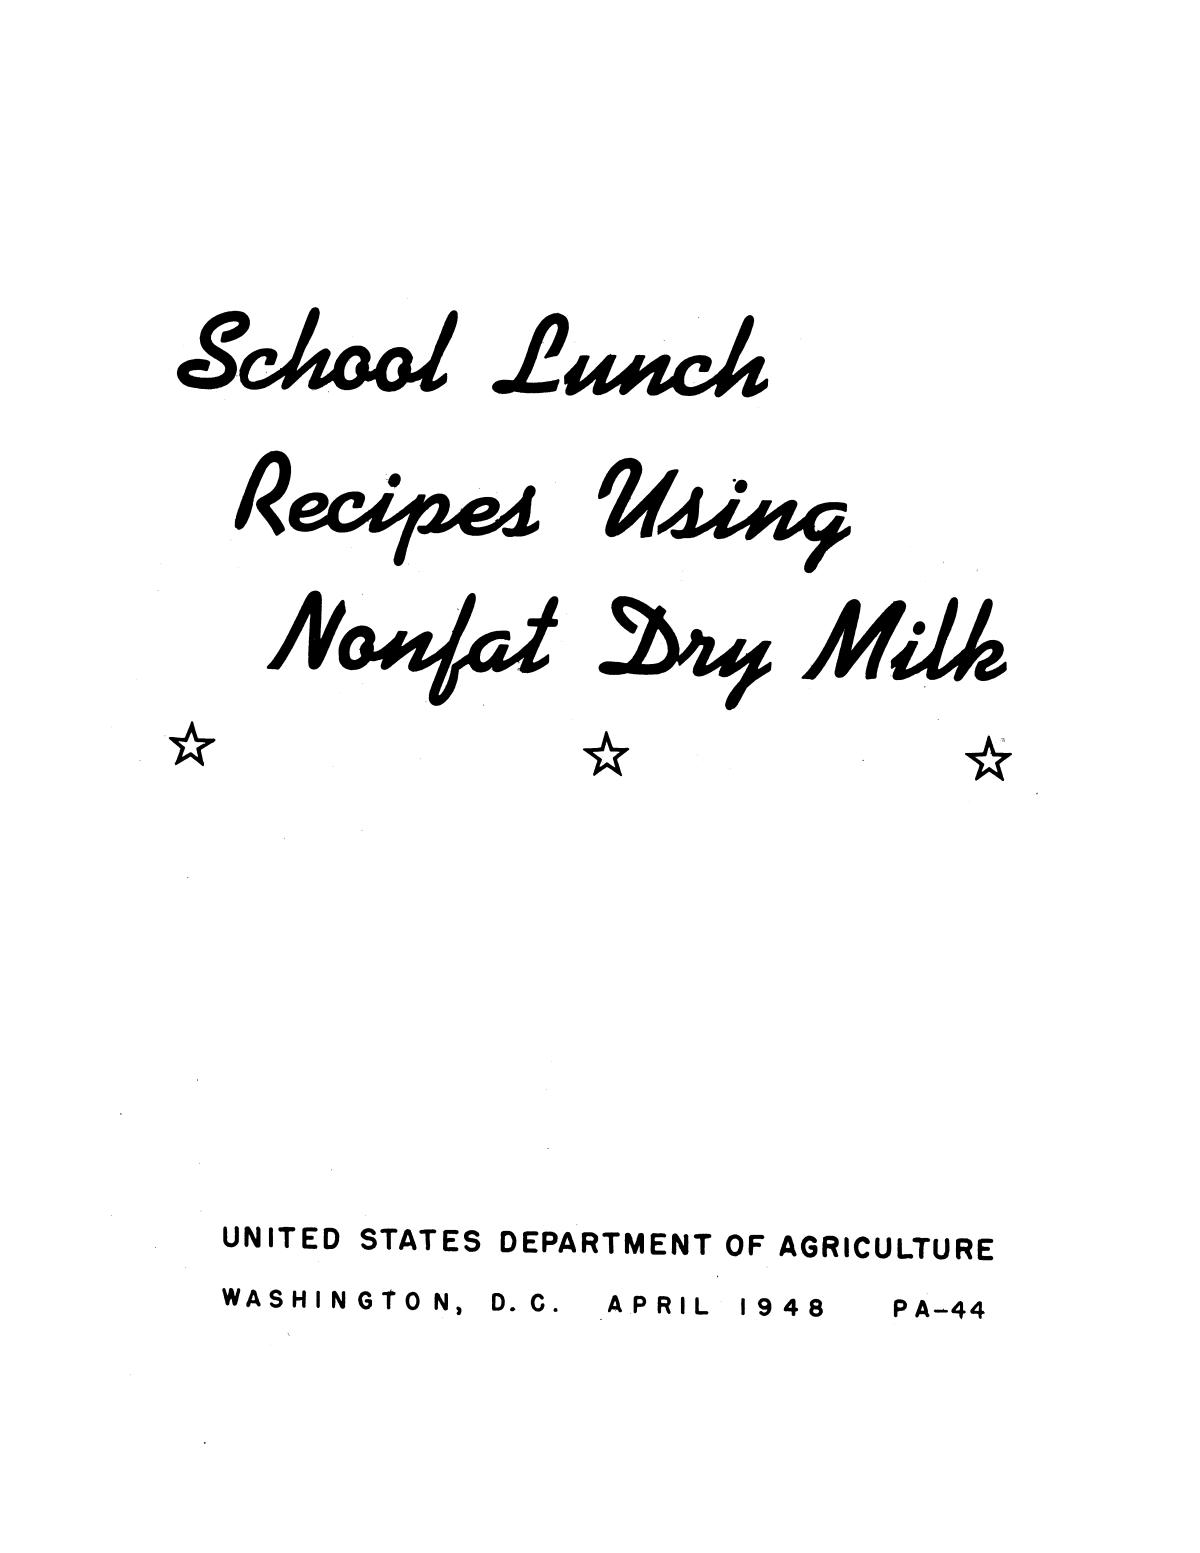 School lunch recipes using nonfat dry milk.                                                                                                      Front Cover